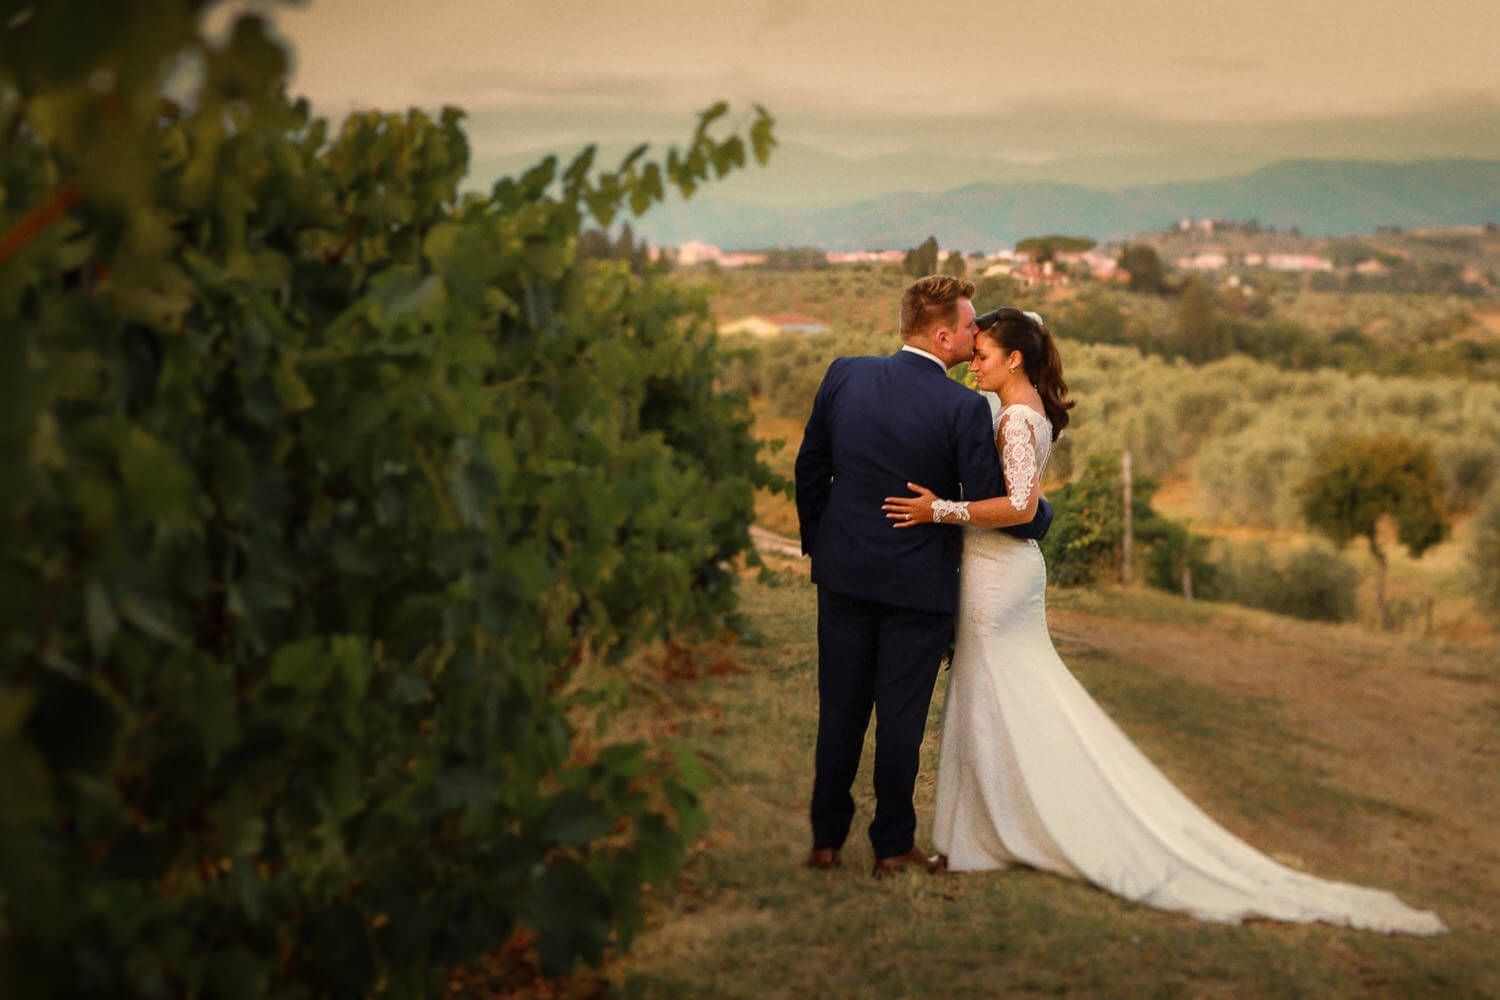 Bride and groom in Tuscany vineyard at sunset